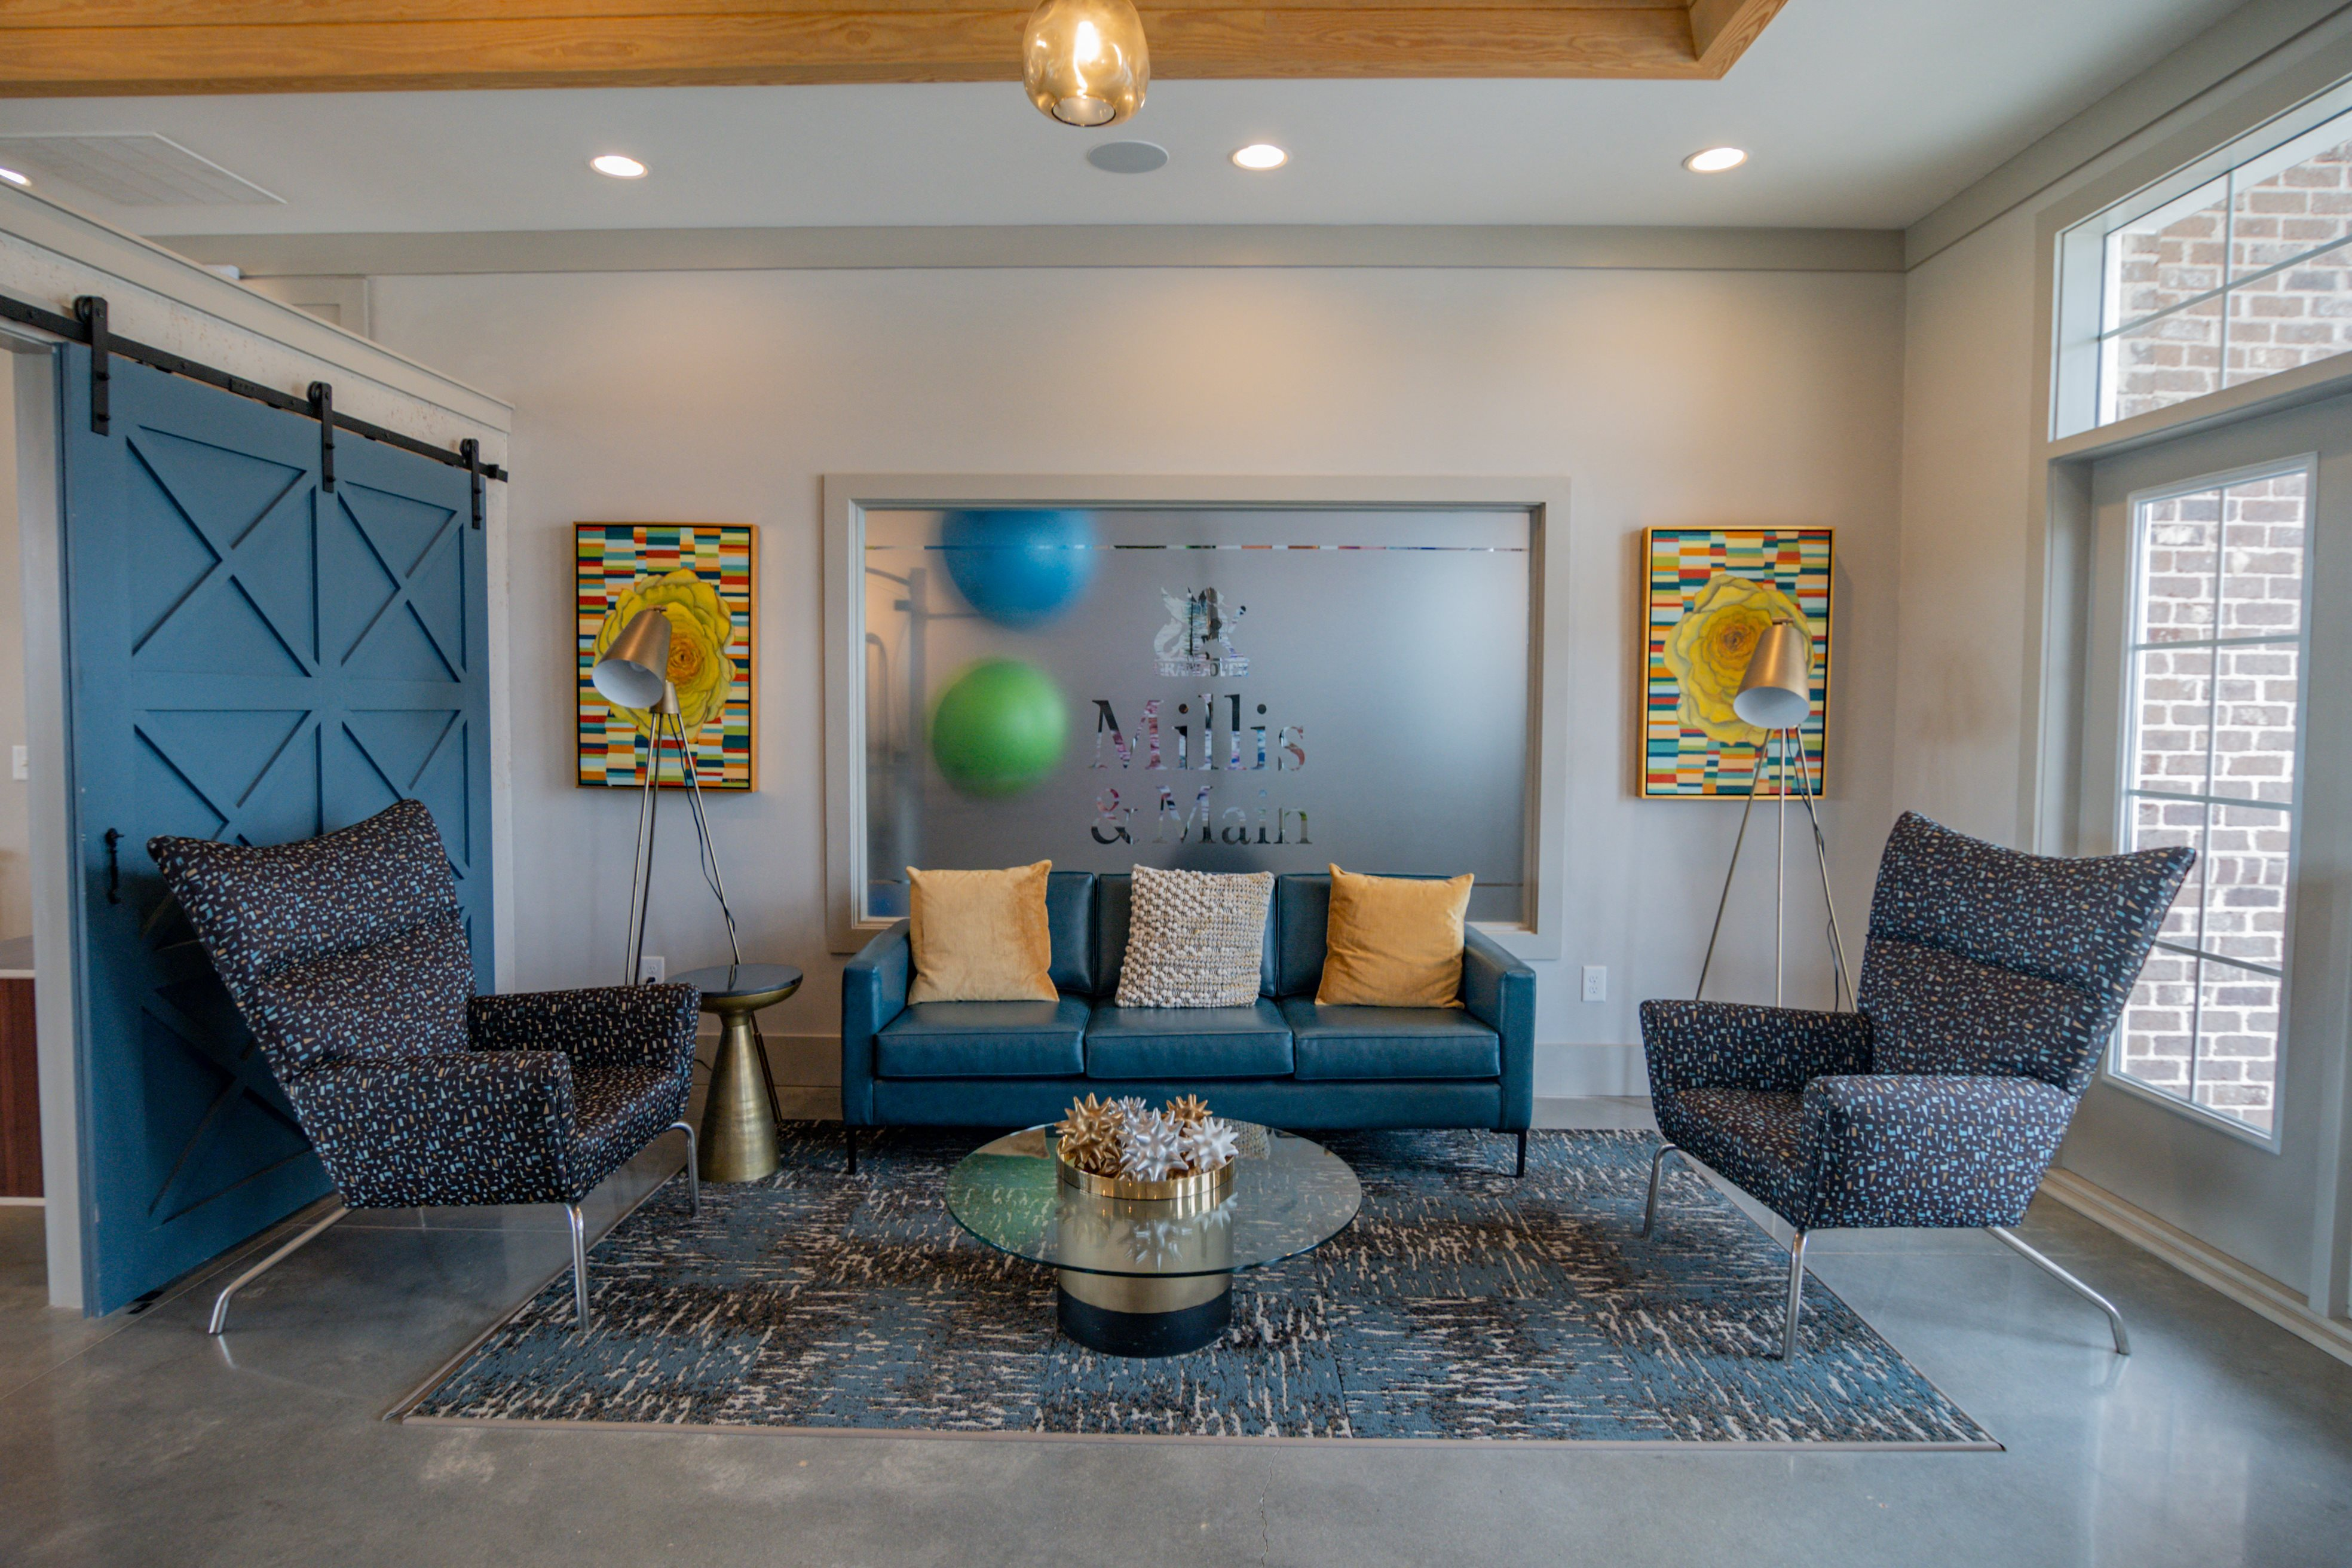 Relax with friends and family inside the clubhouse at Millis and Main at Grandover